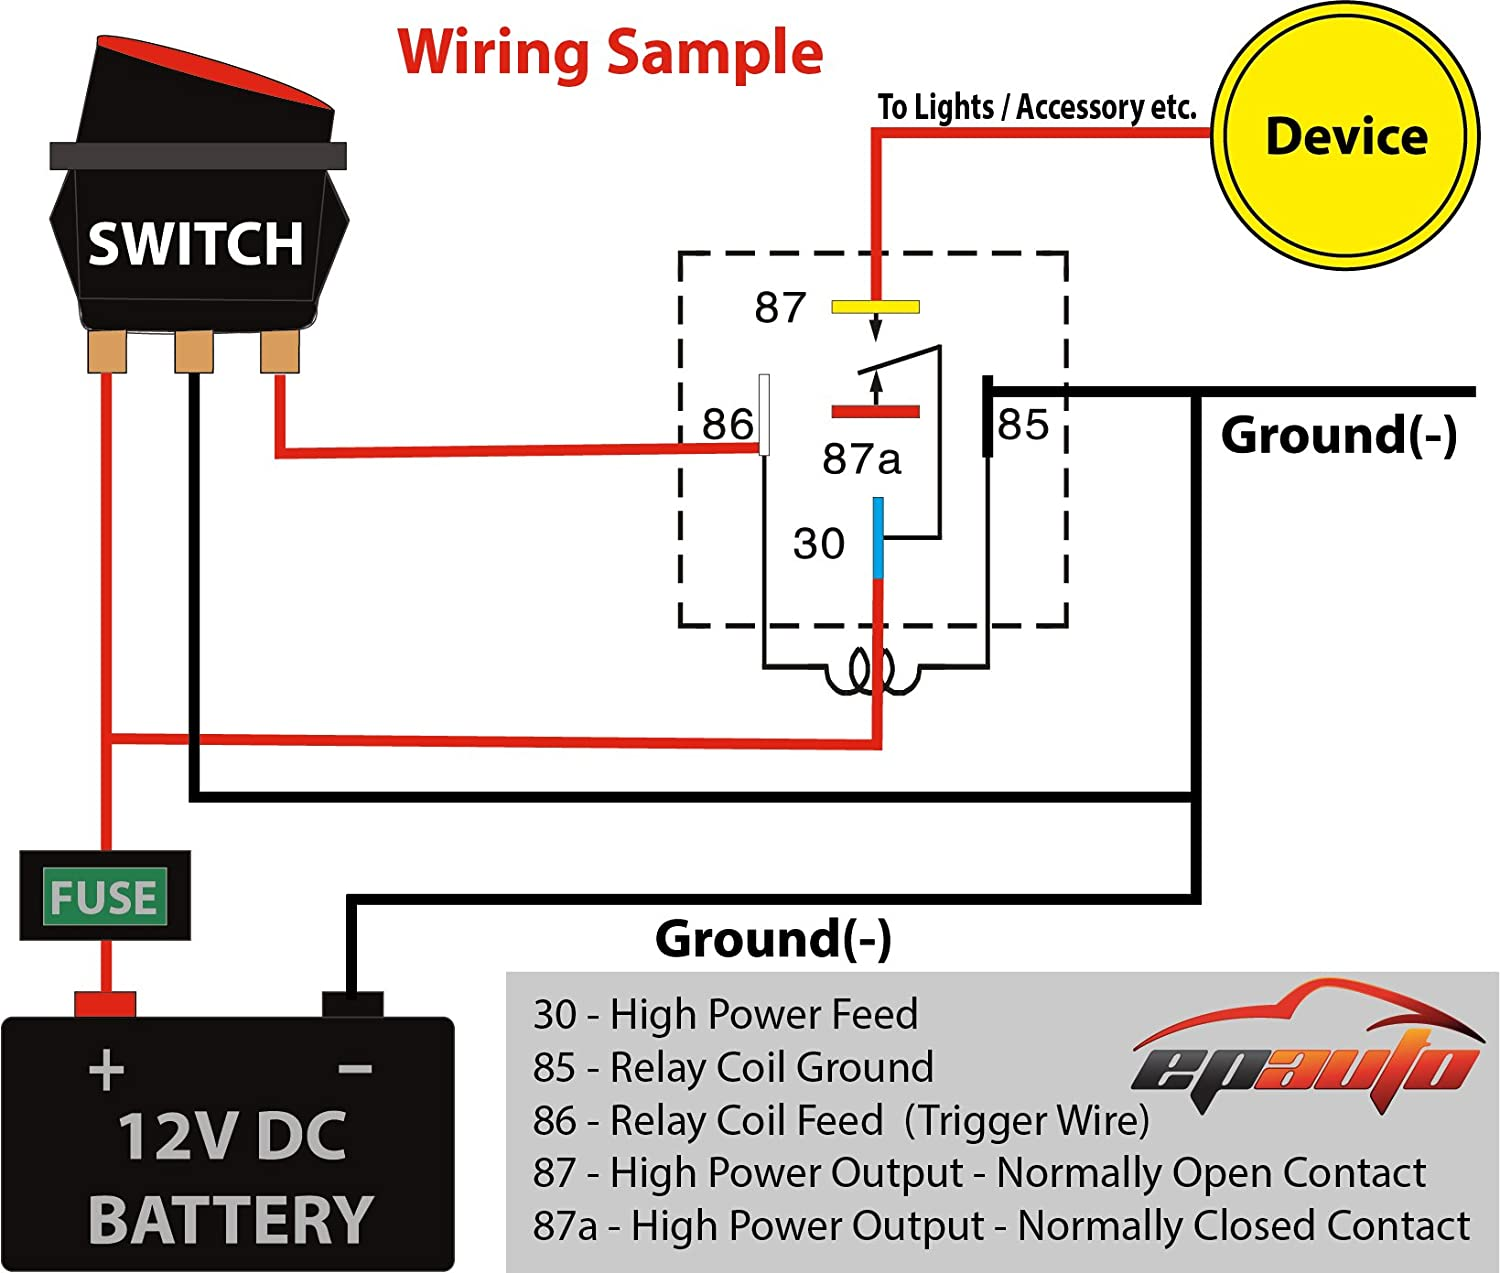 12v Dc Wiring Guide | Wiring Schematic Diagram  W Inverter Wiring Diagram on